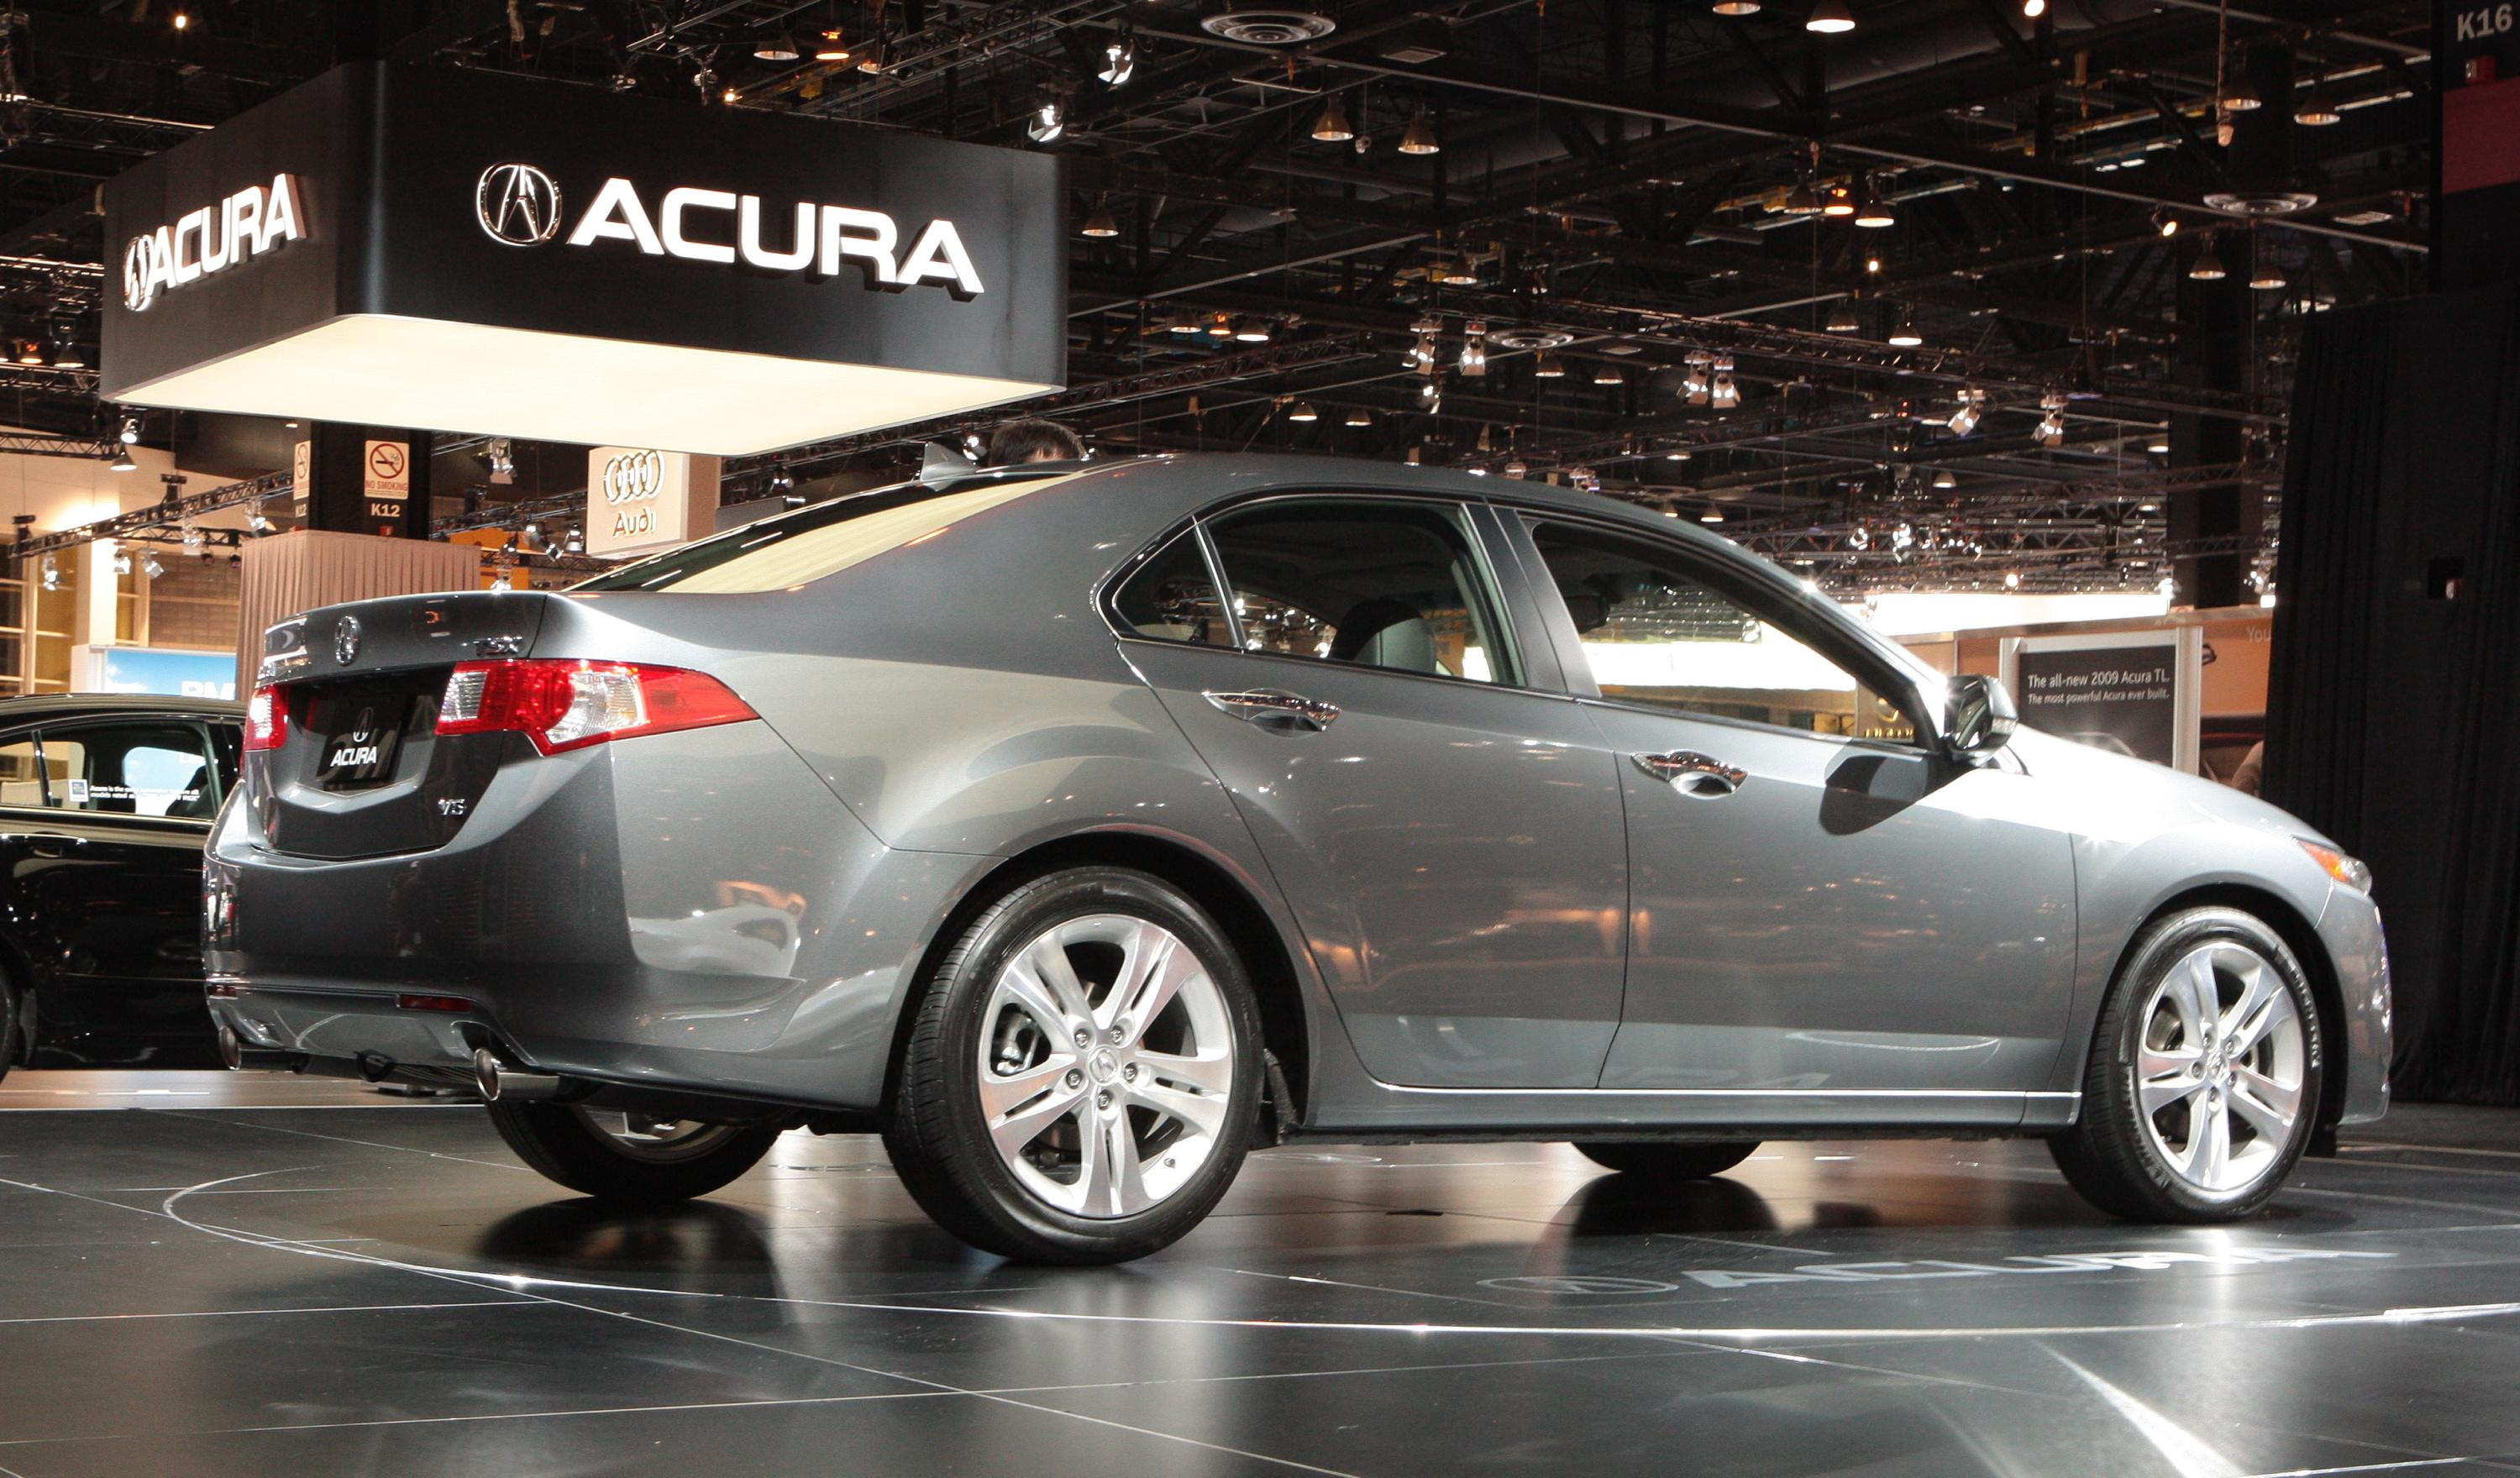 tsx at sale amazing for drummondville acura condition used hyundai details